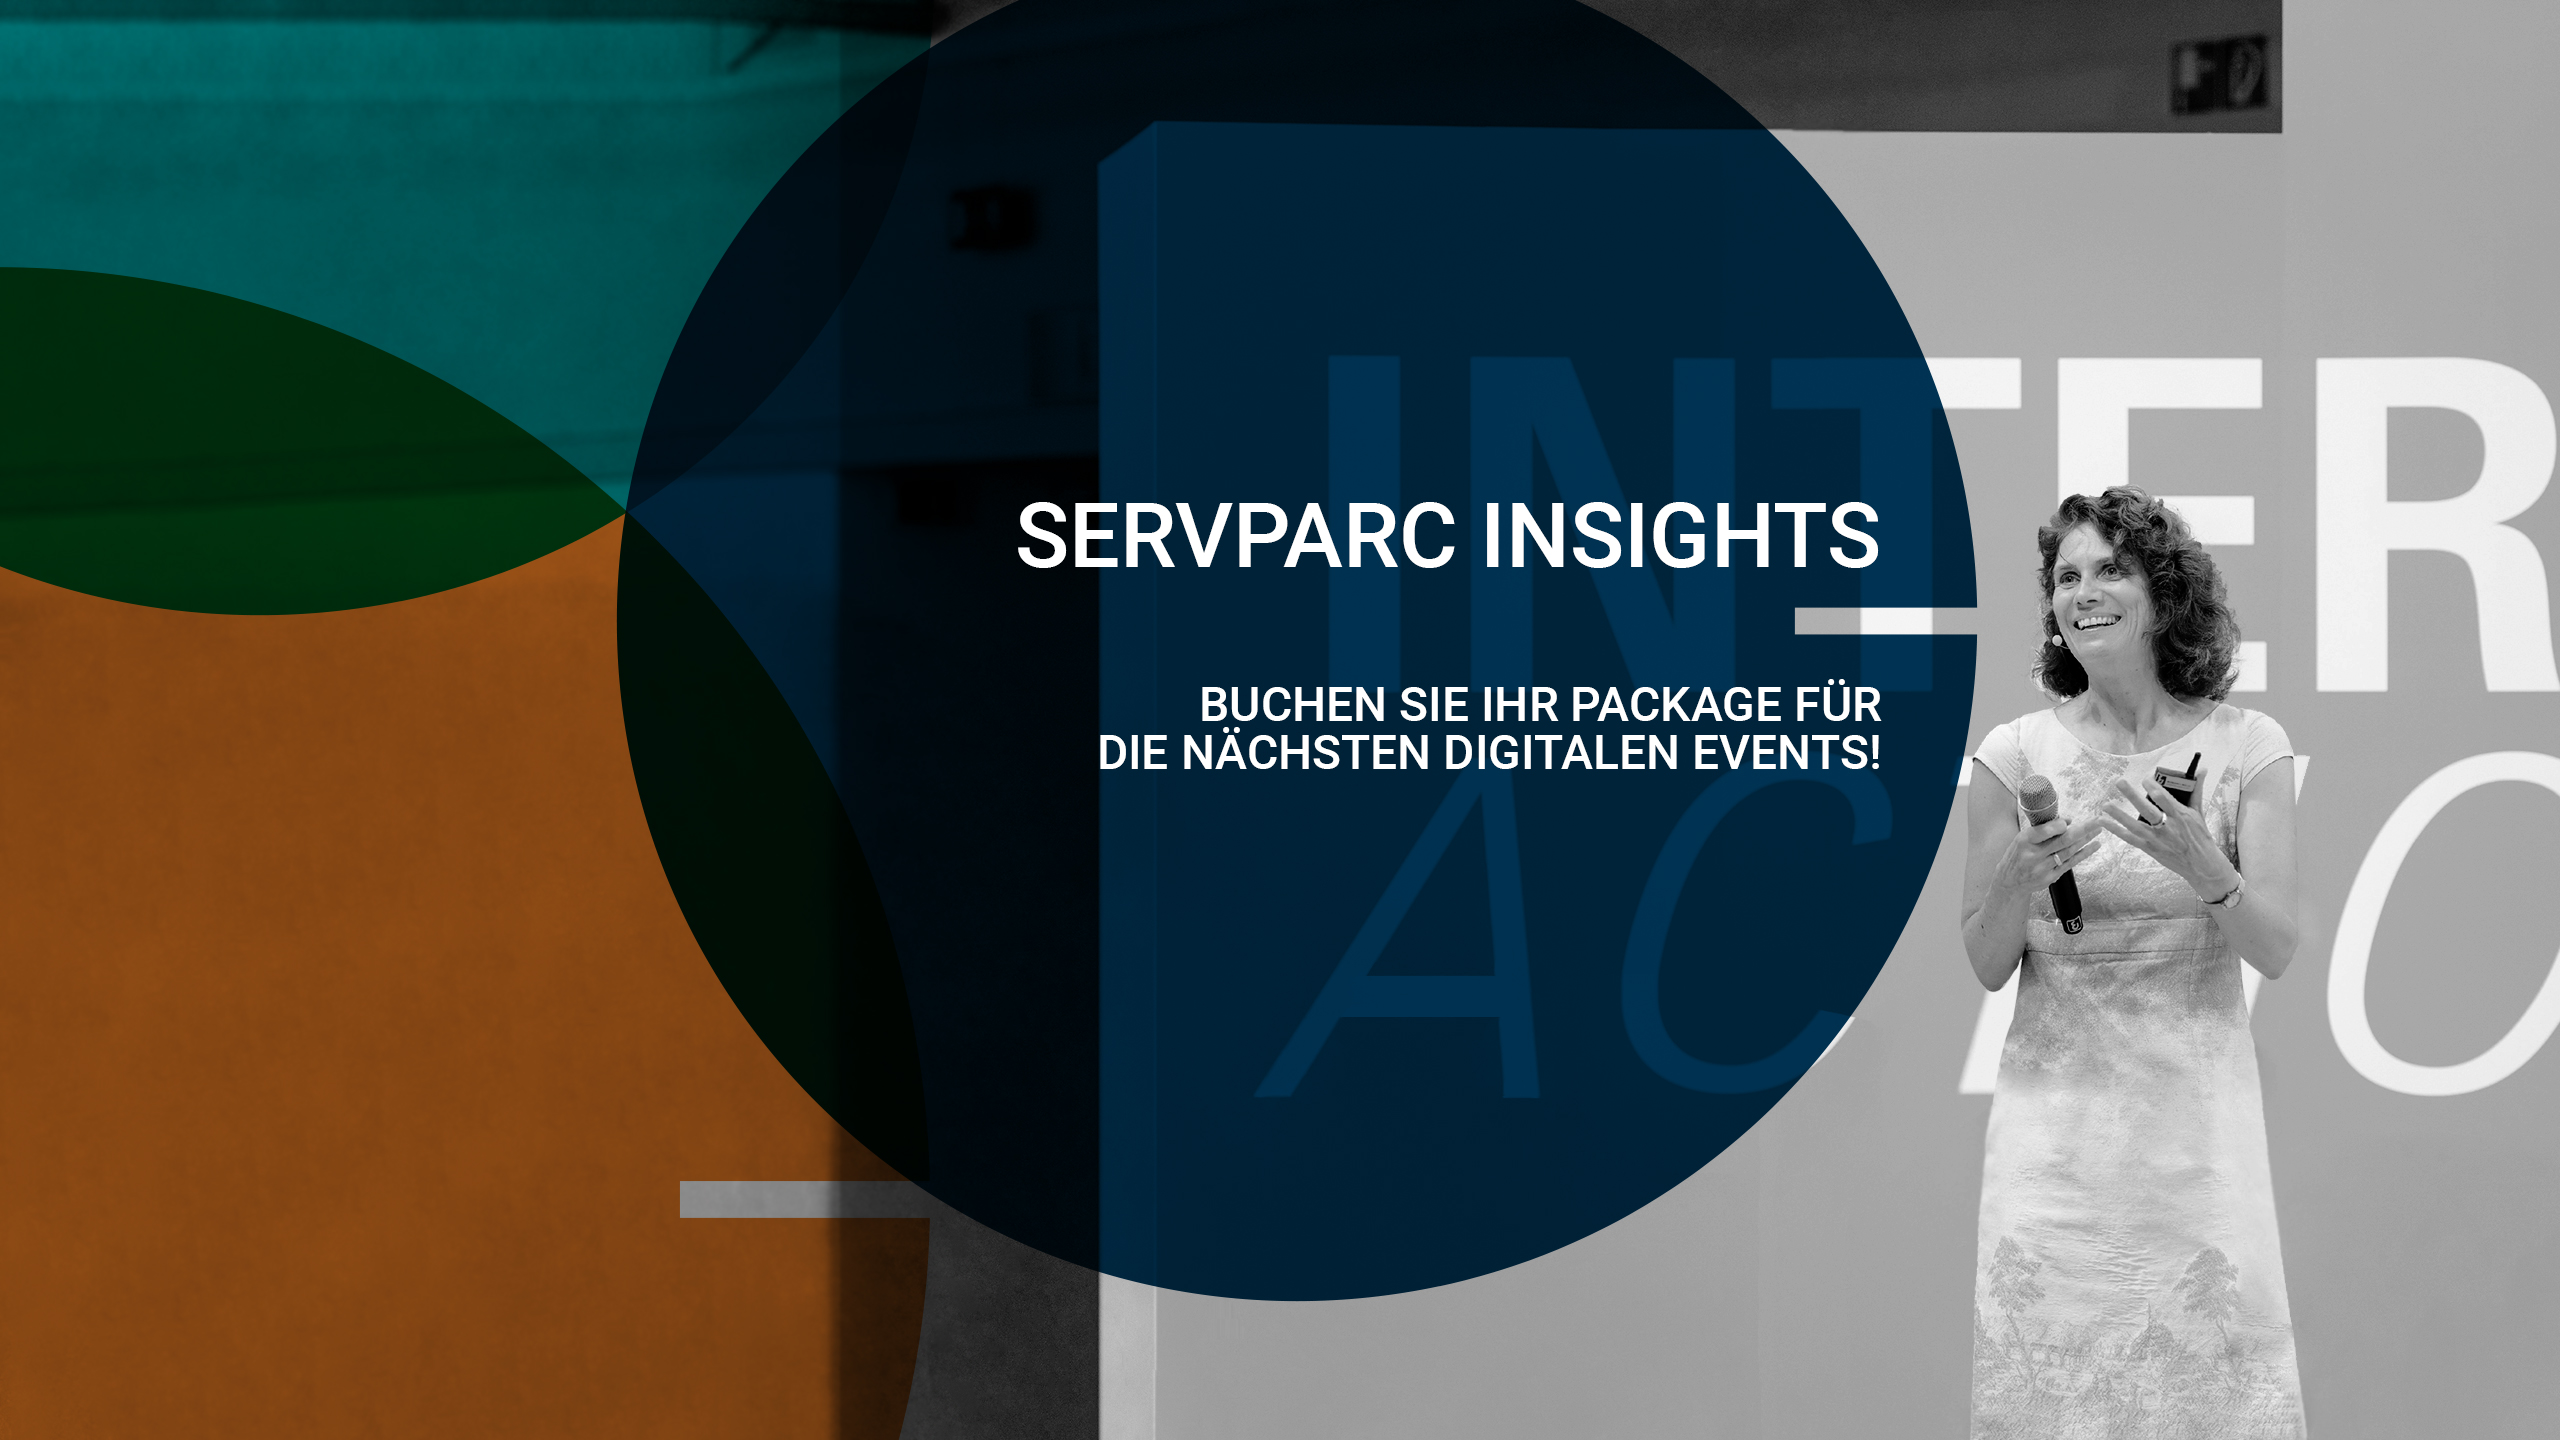 Servparc Insights